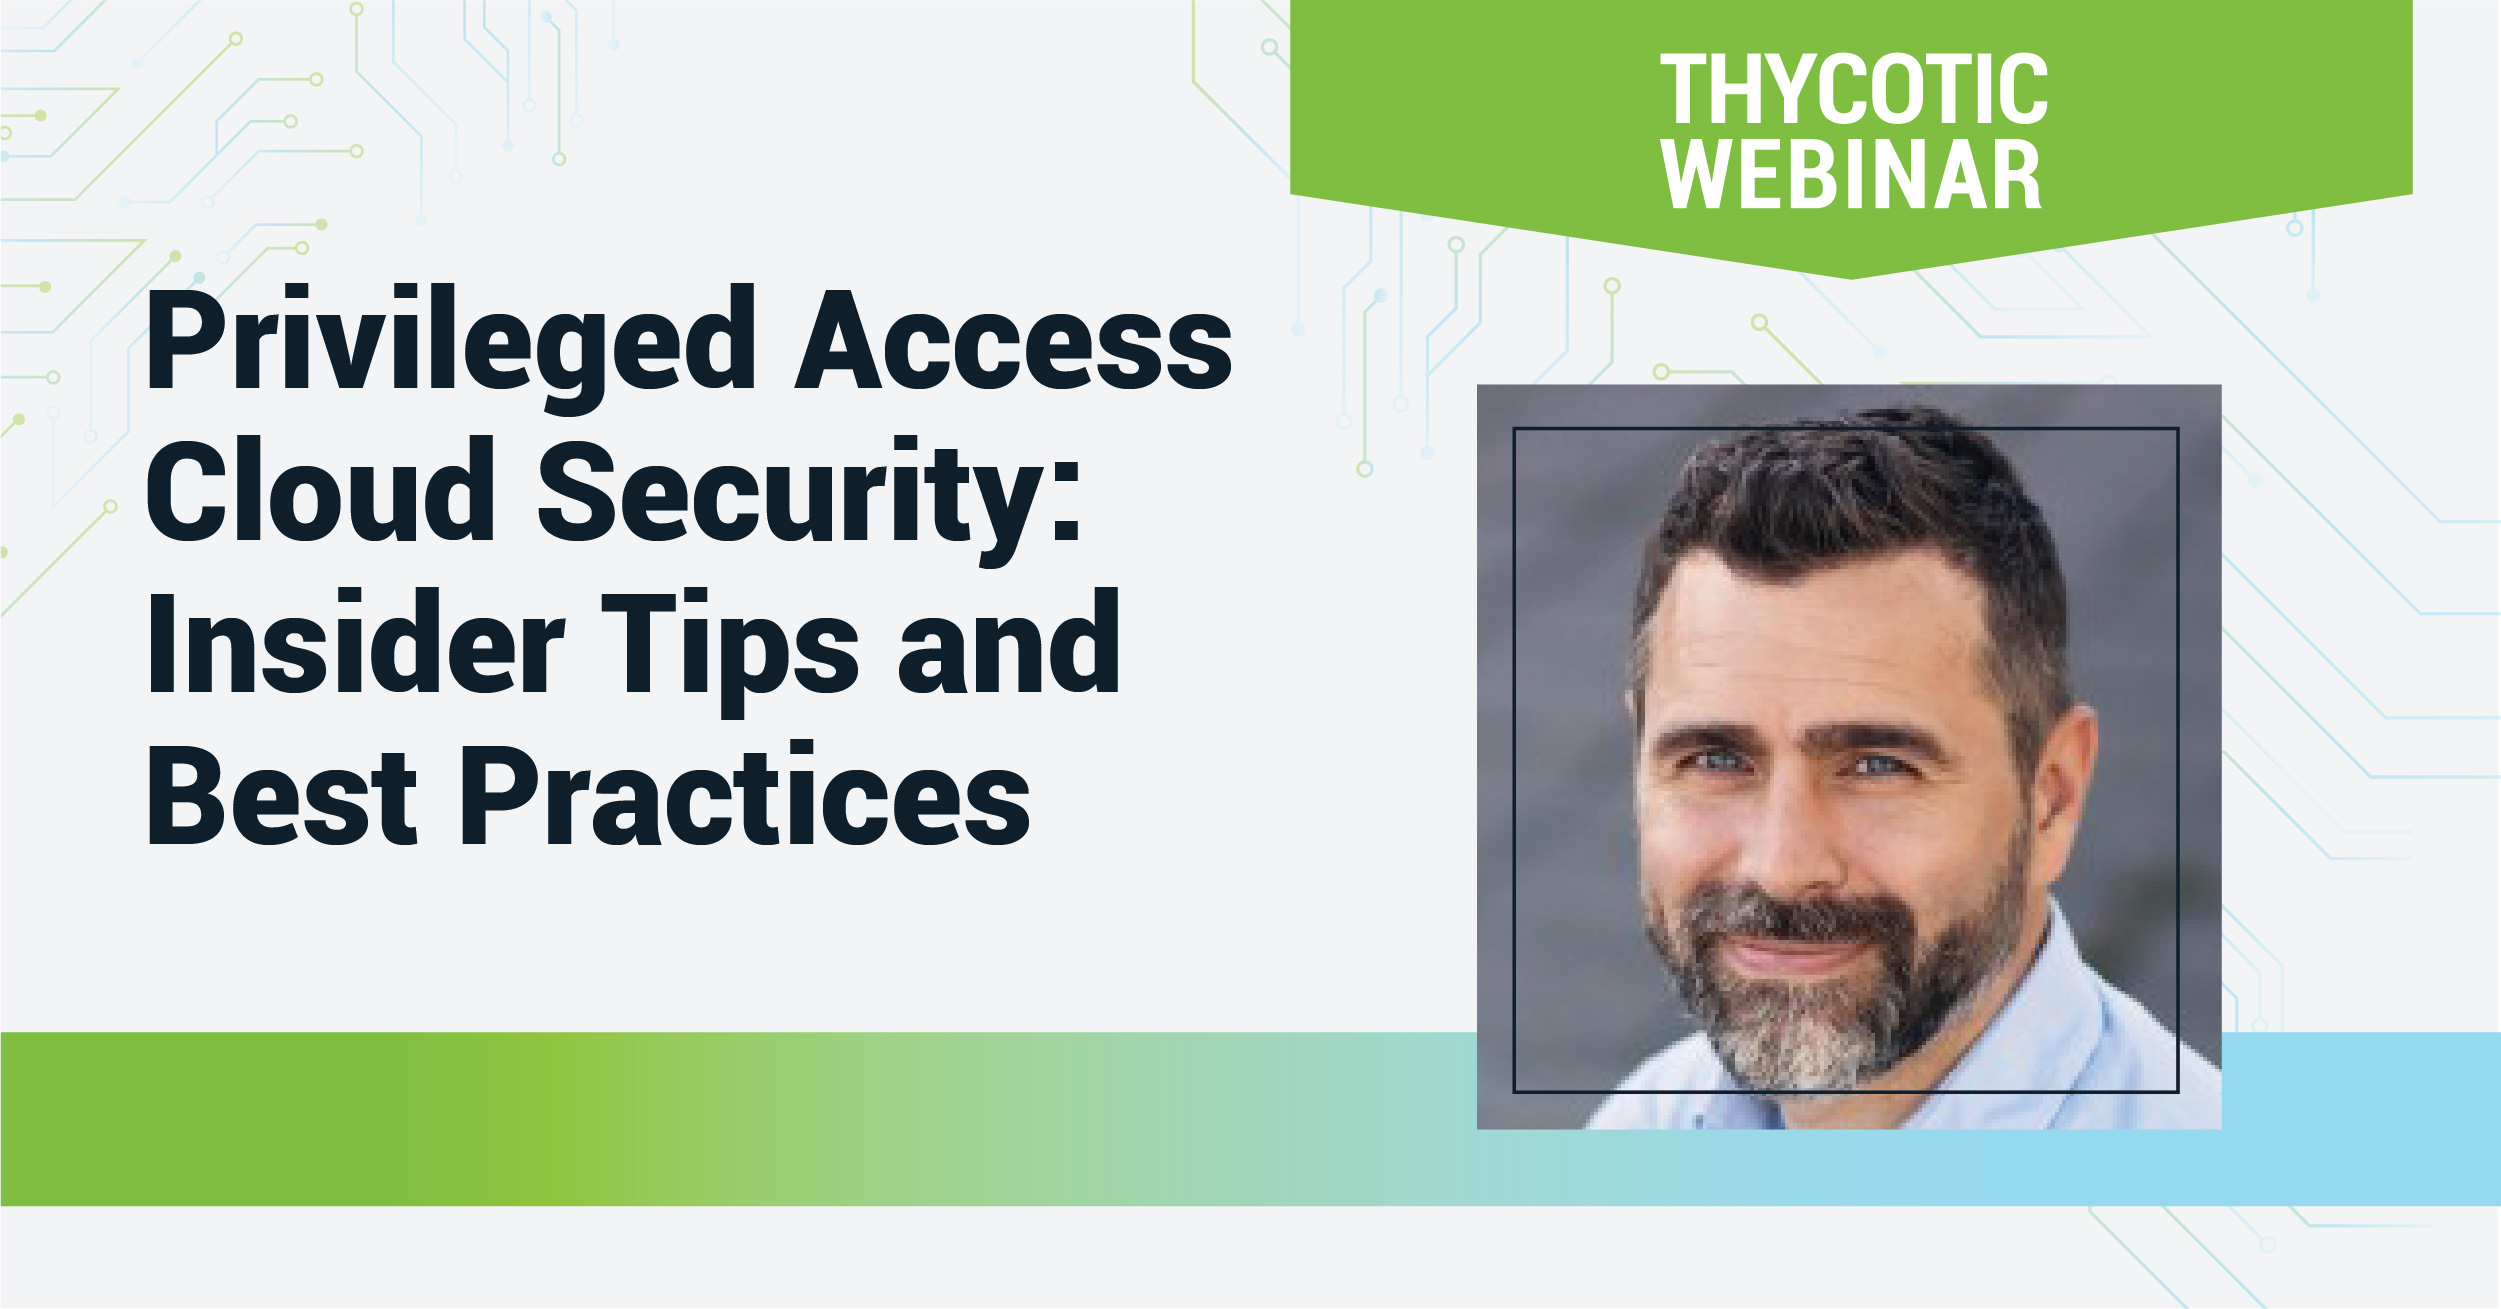 Privileged Access Cloud Security: Insider Tips and Best Practices